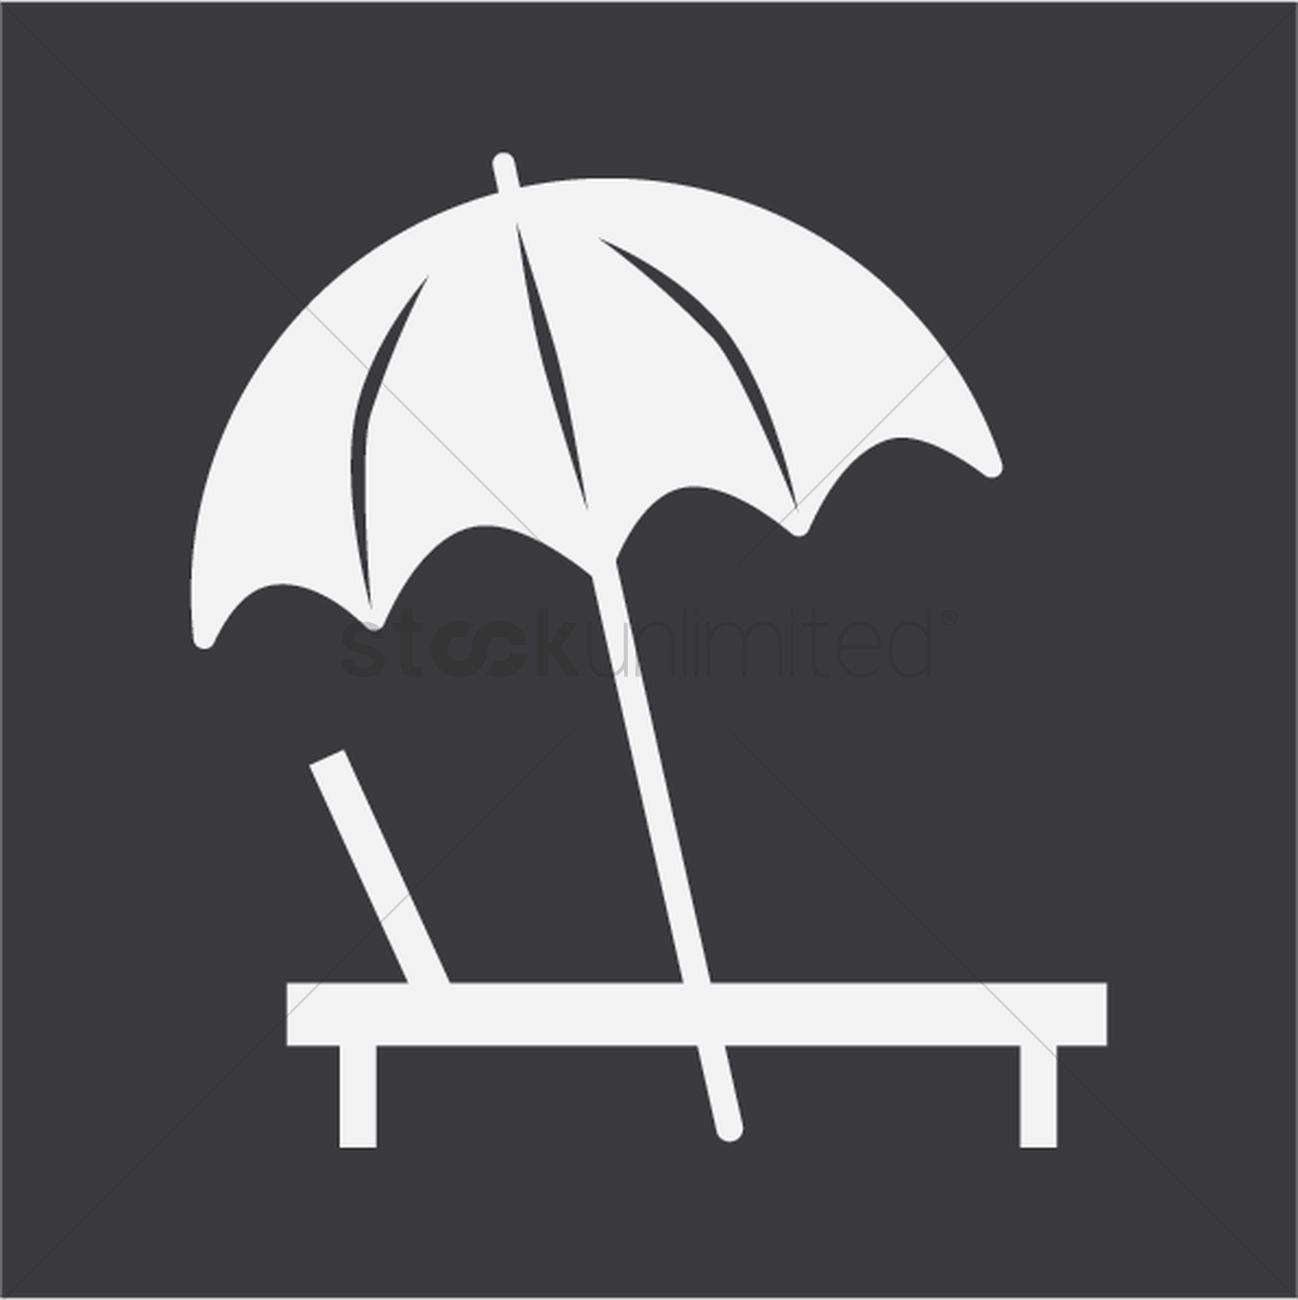 Chair With Umbrella Silhouette Of Beach Chair And Umbrella Vector Image 1438200